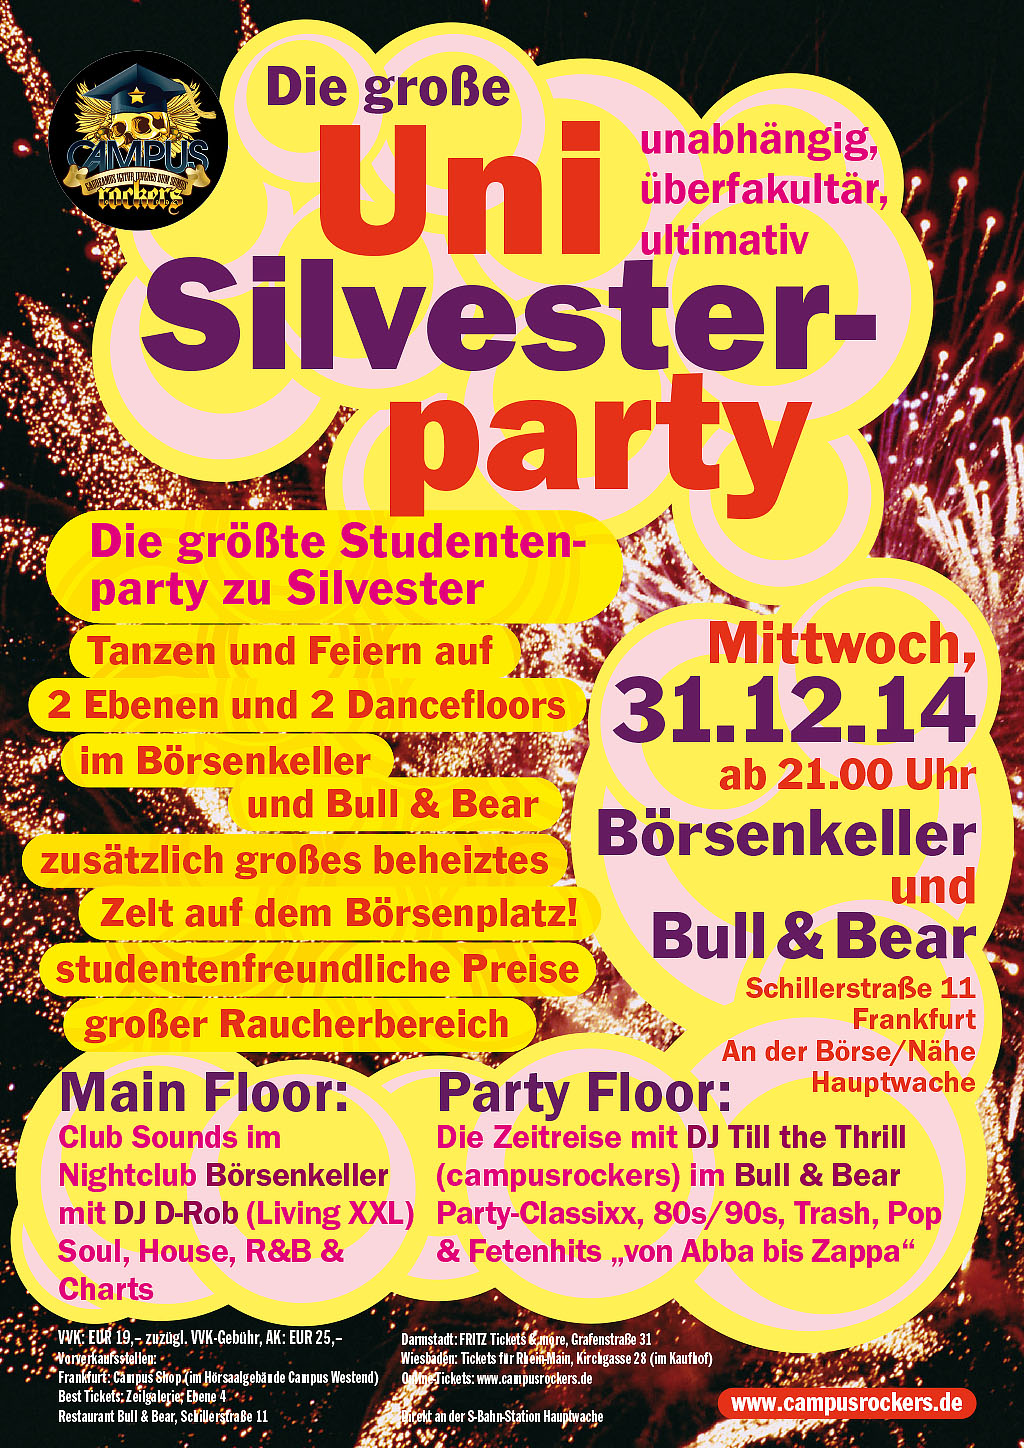 Silvester 2014 single party frankfurt